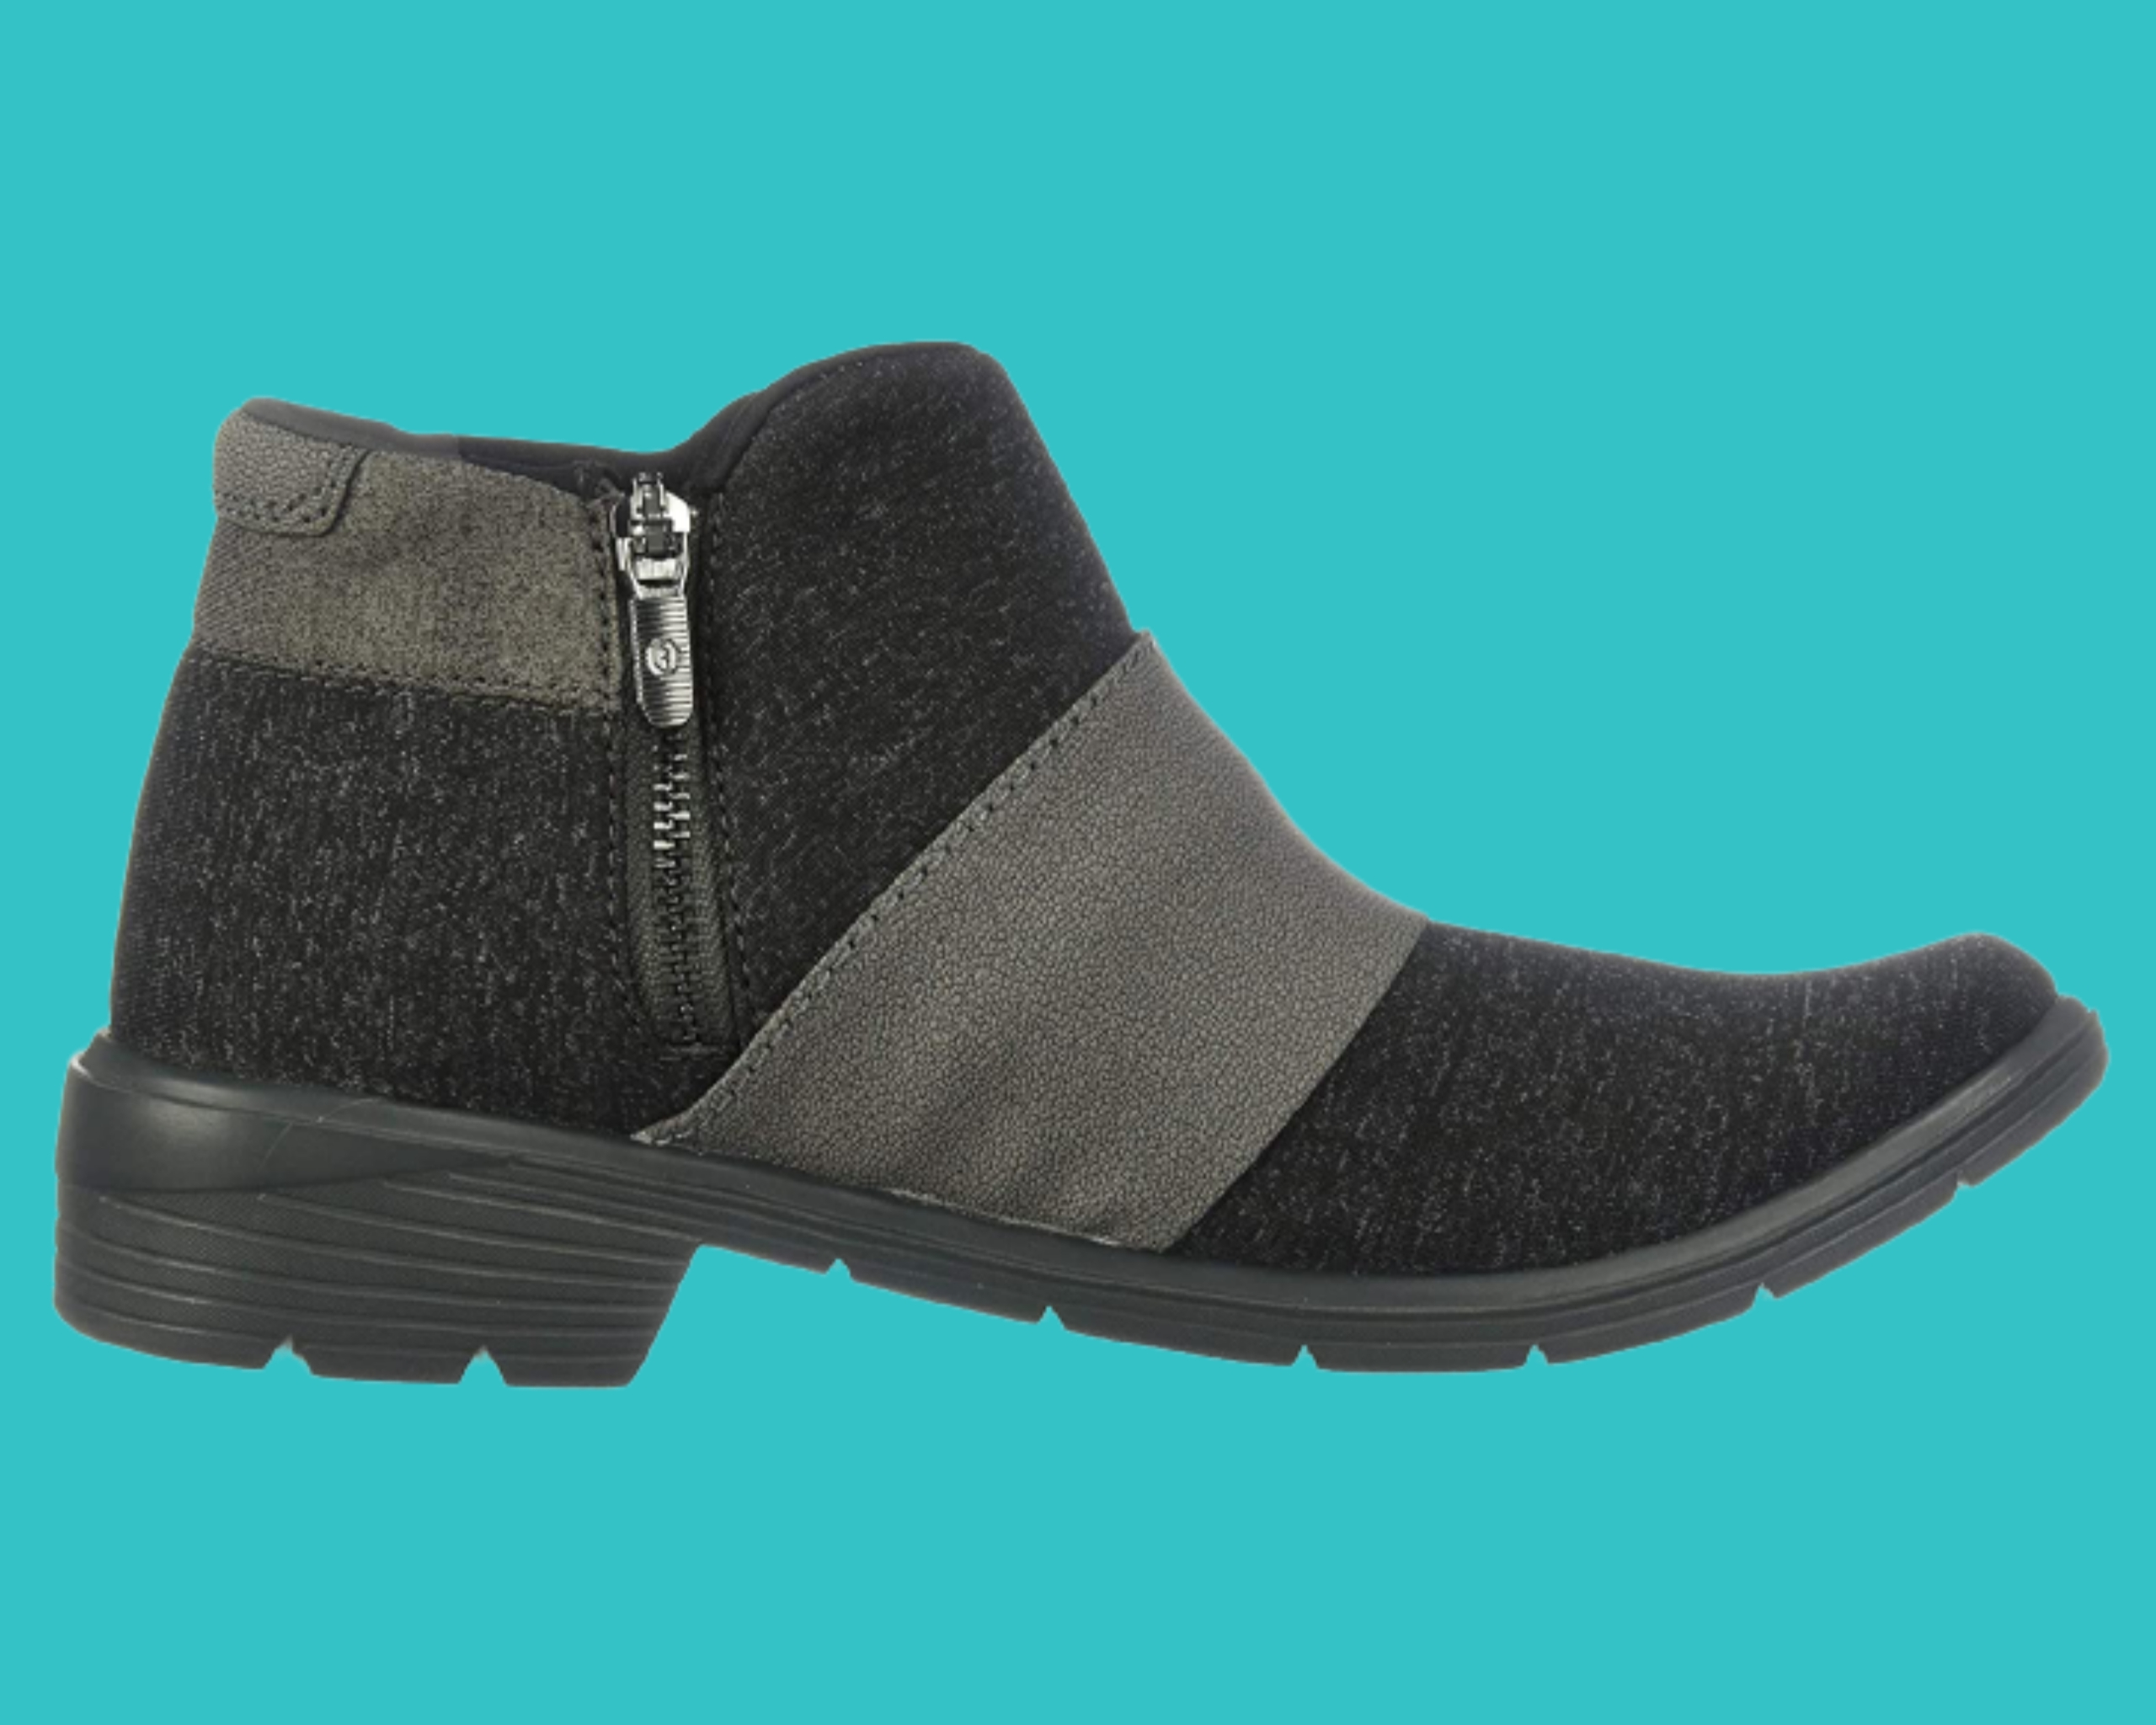 Supportive shoes for pregnant women